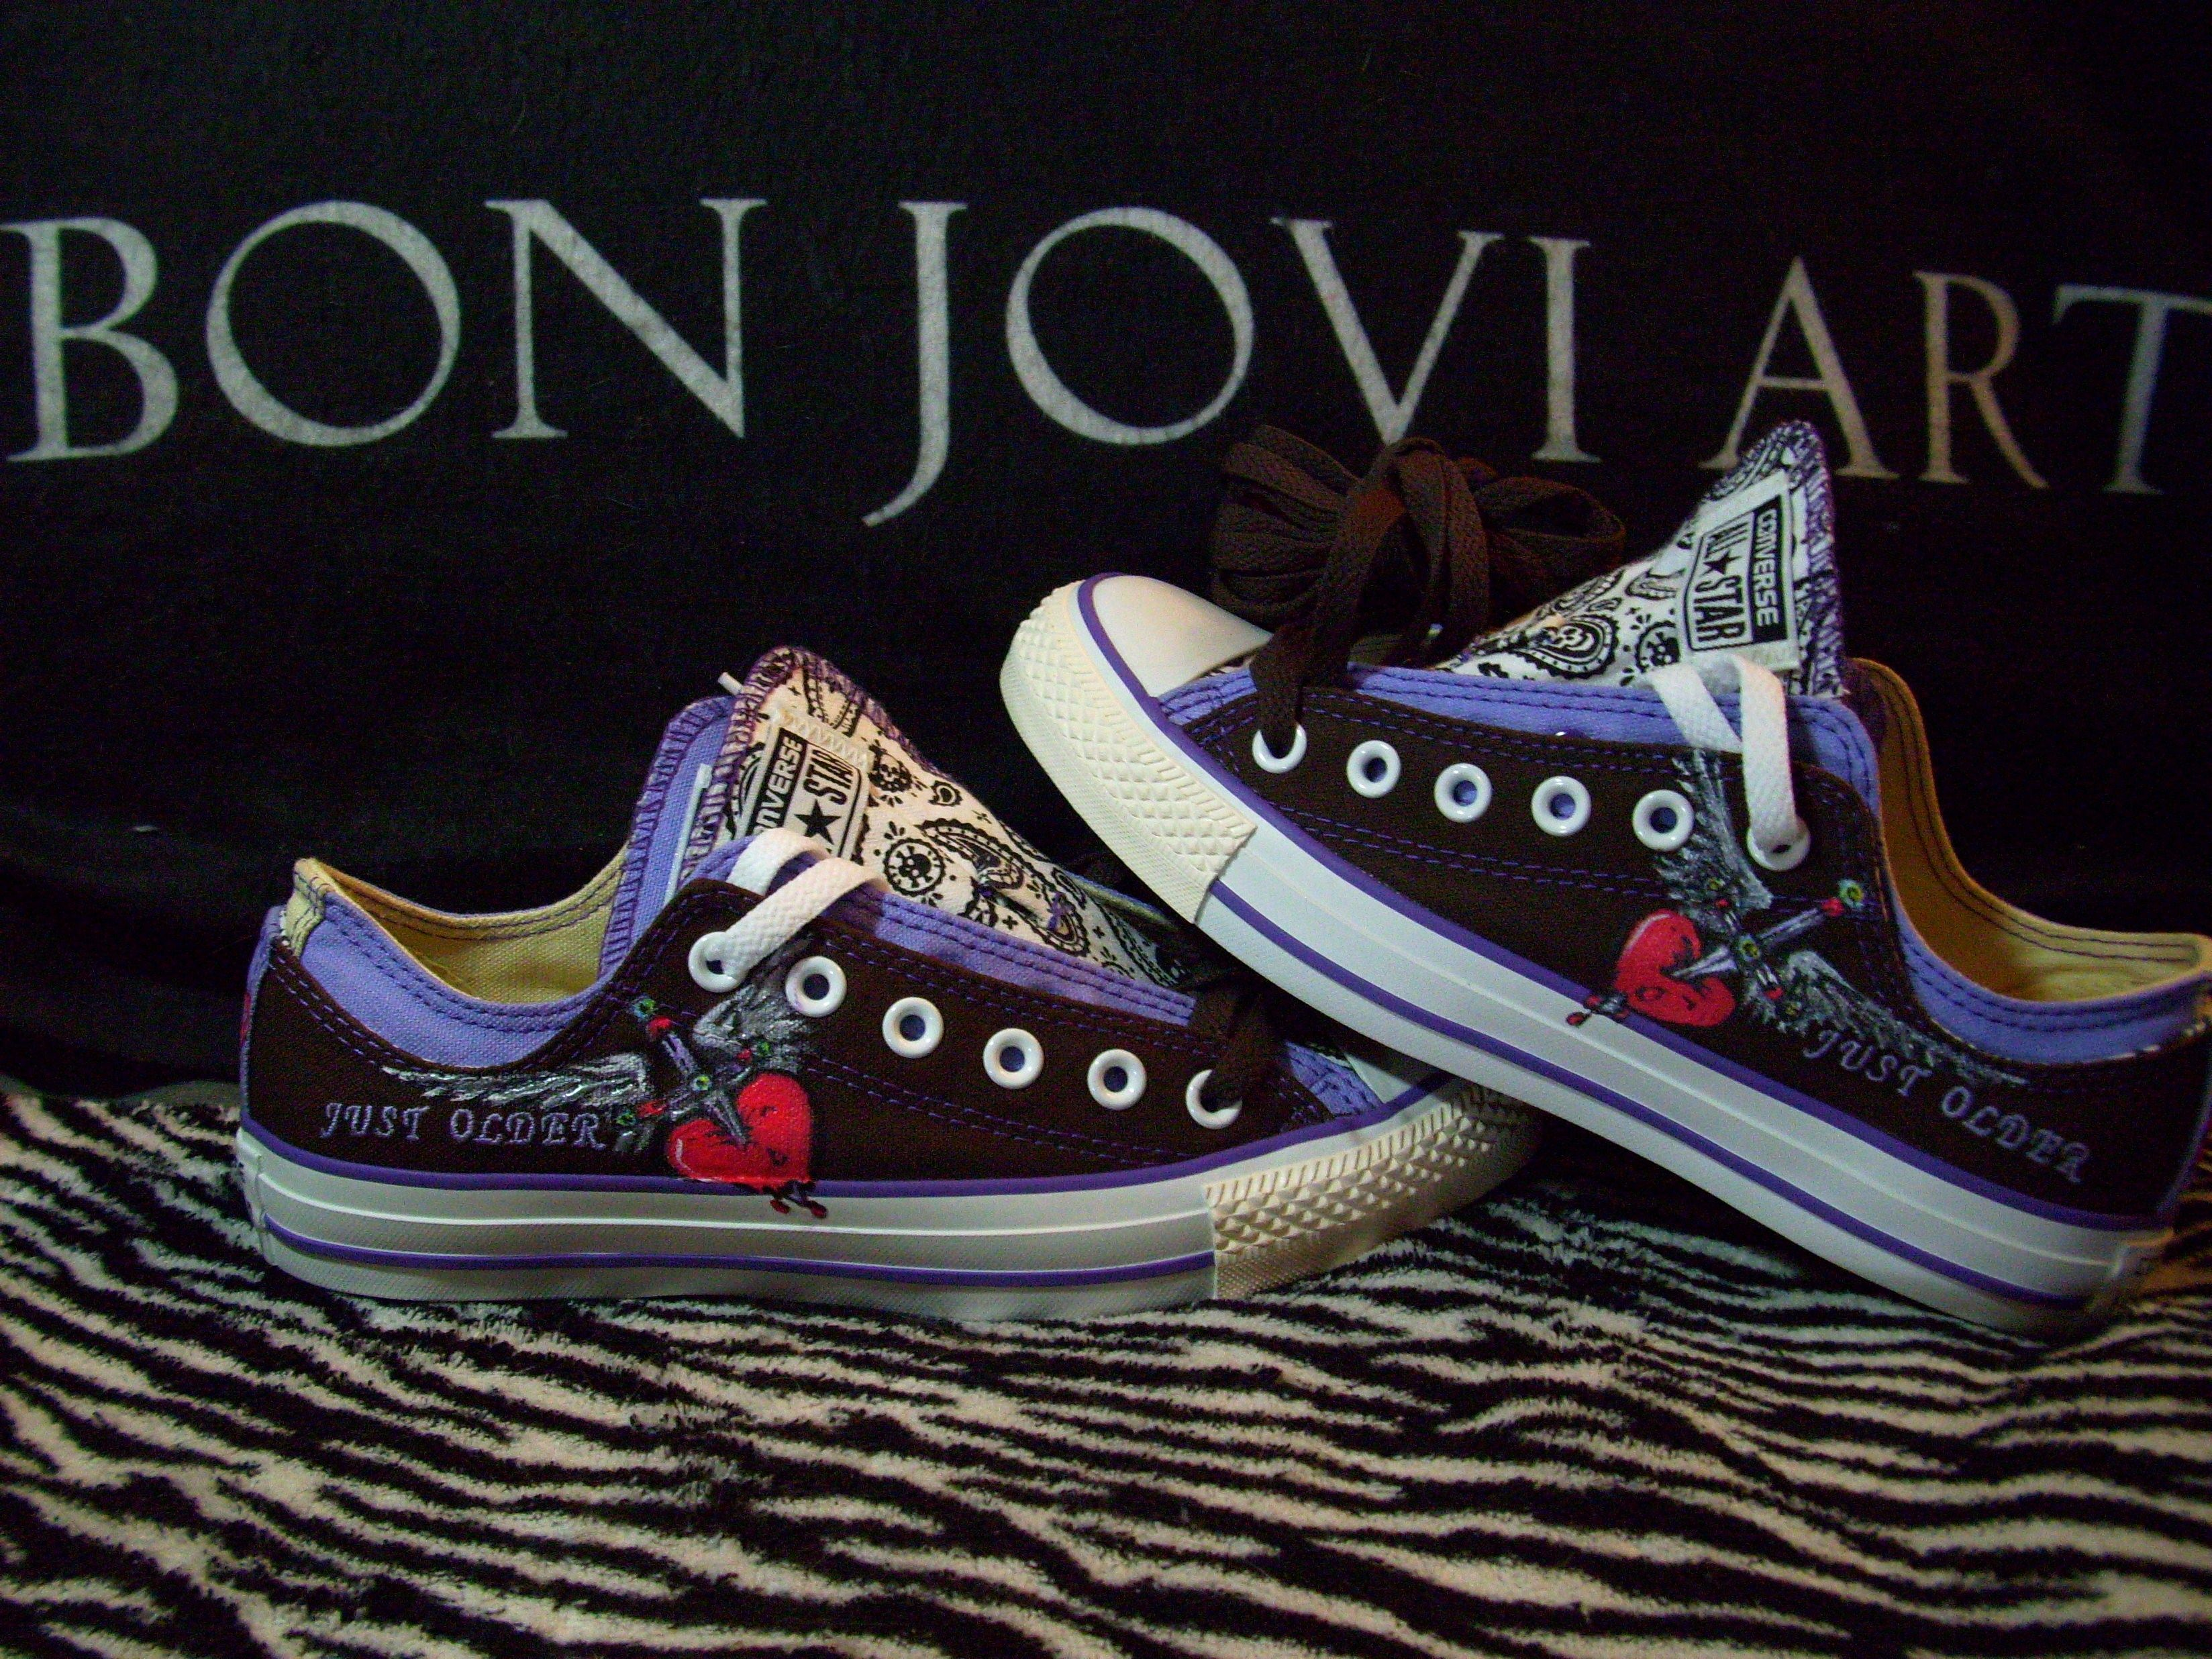 2353e7c0b1c43 Shoes Painted Converse Paintings Jovi Art My Bon Hand Hwnf844x